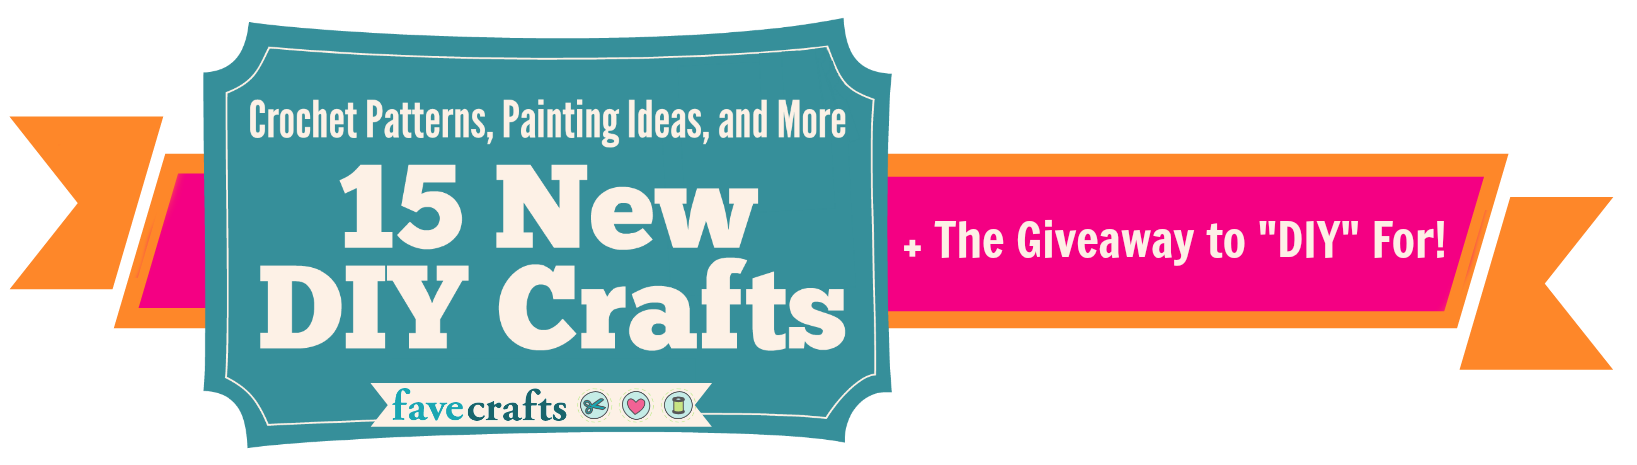 Crochet Patterns, Painting Ideas, and More:  15 New DIY Crafts free eBook.